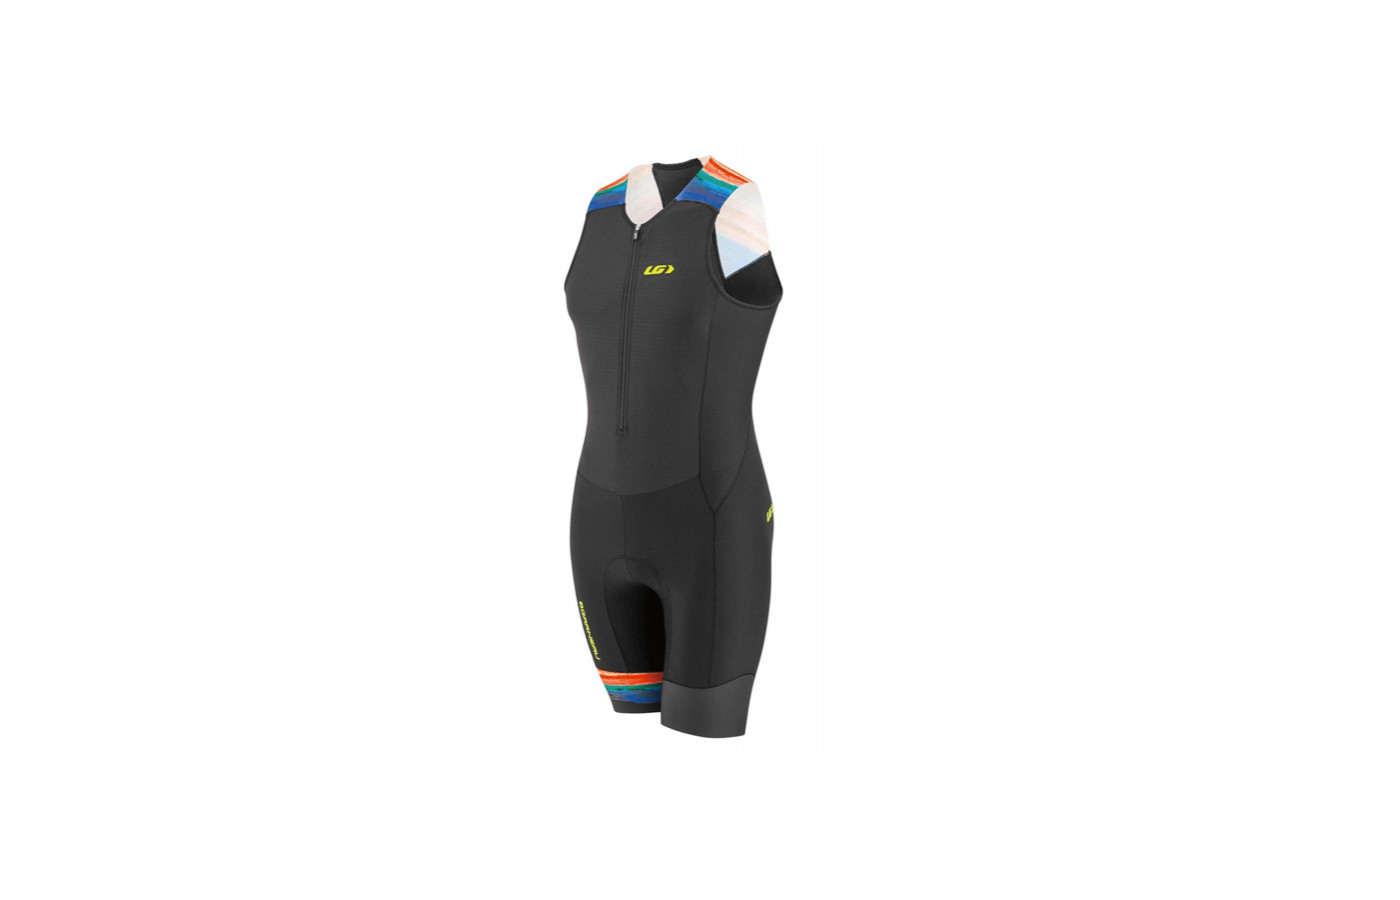 The Pro Carbon tri suit is available in four color schemes for each size range